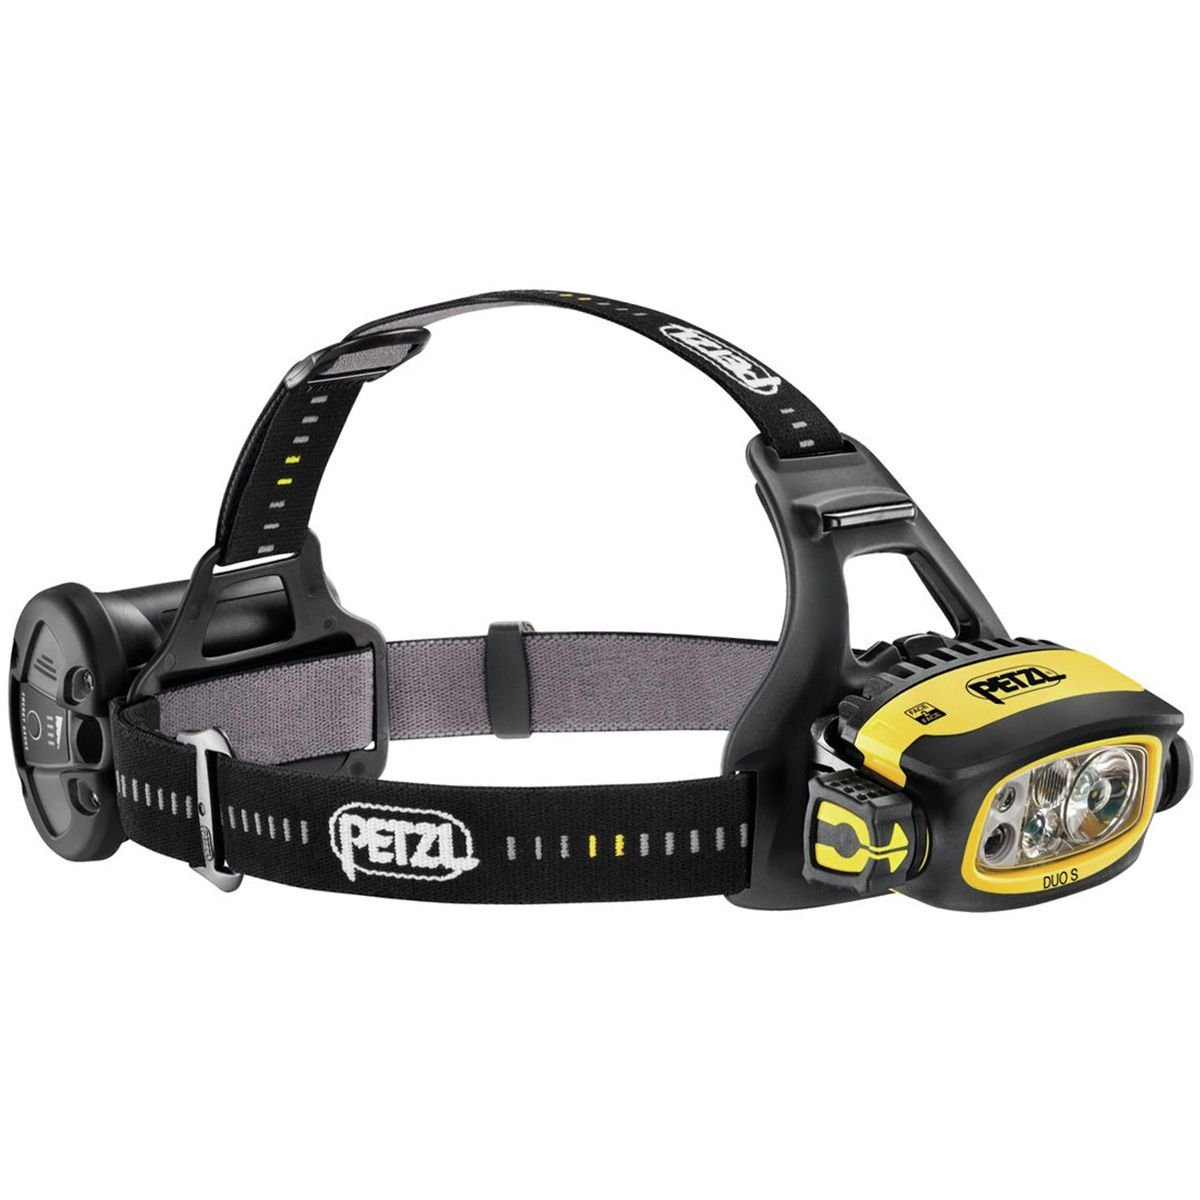 Petzl - DUO S 1100 Lumens, Durable, Waterproof, Rechargeable, with Face2Face Technology